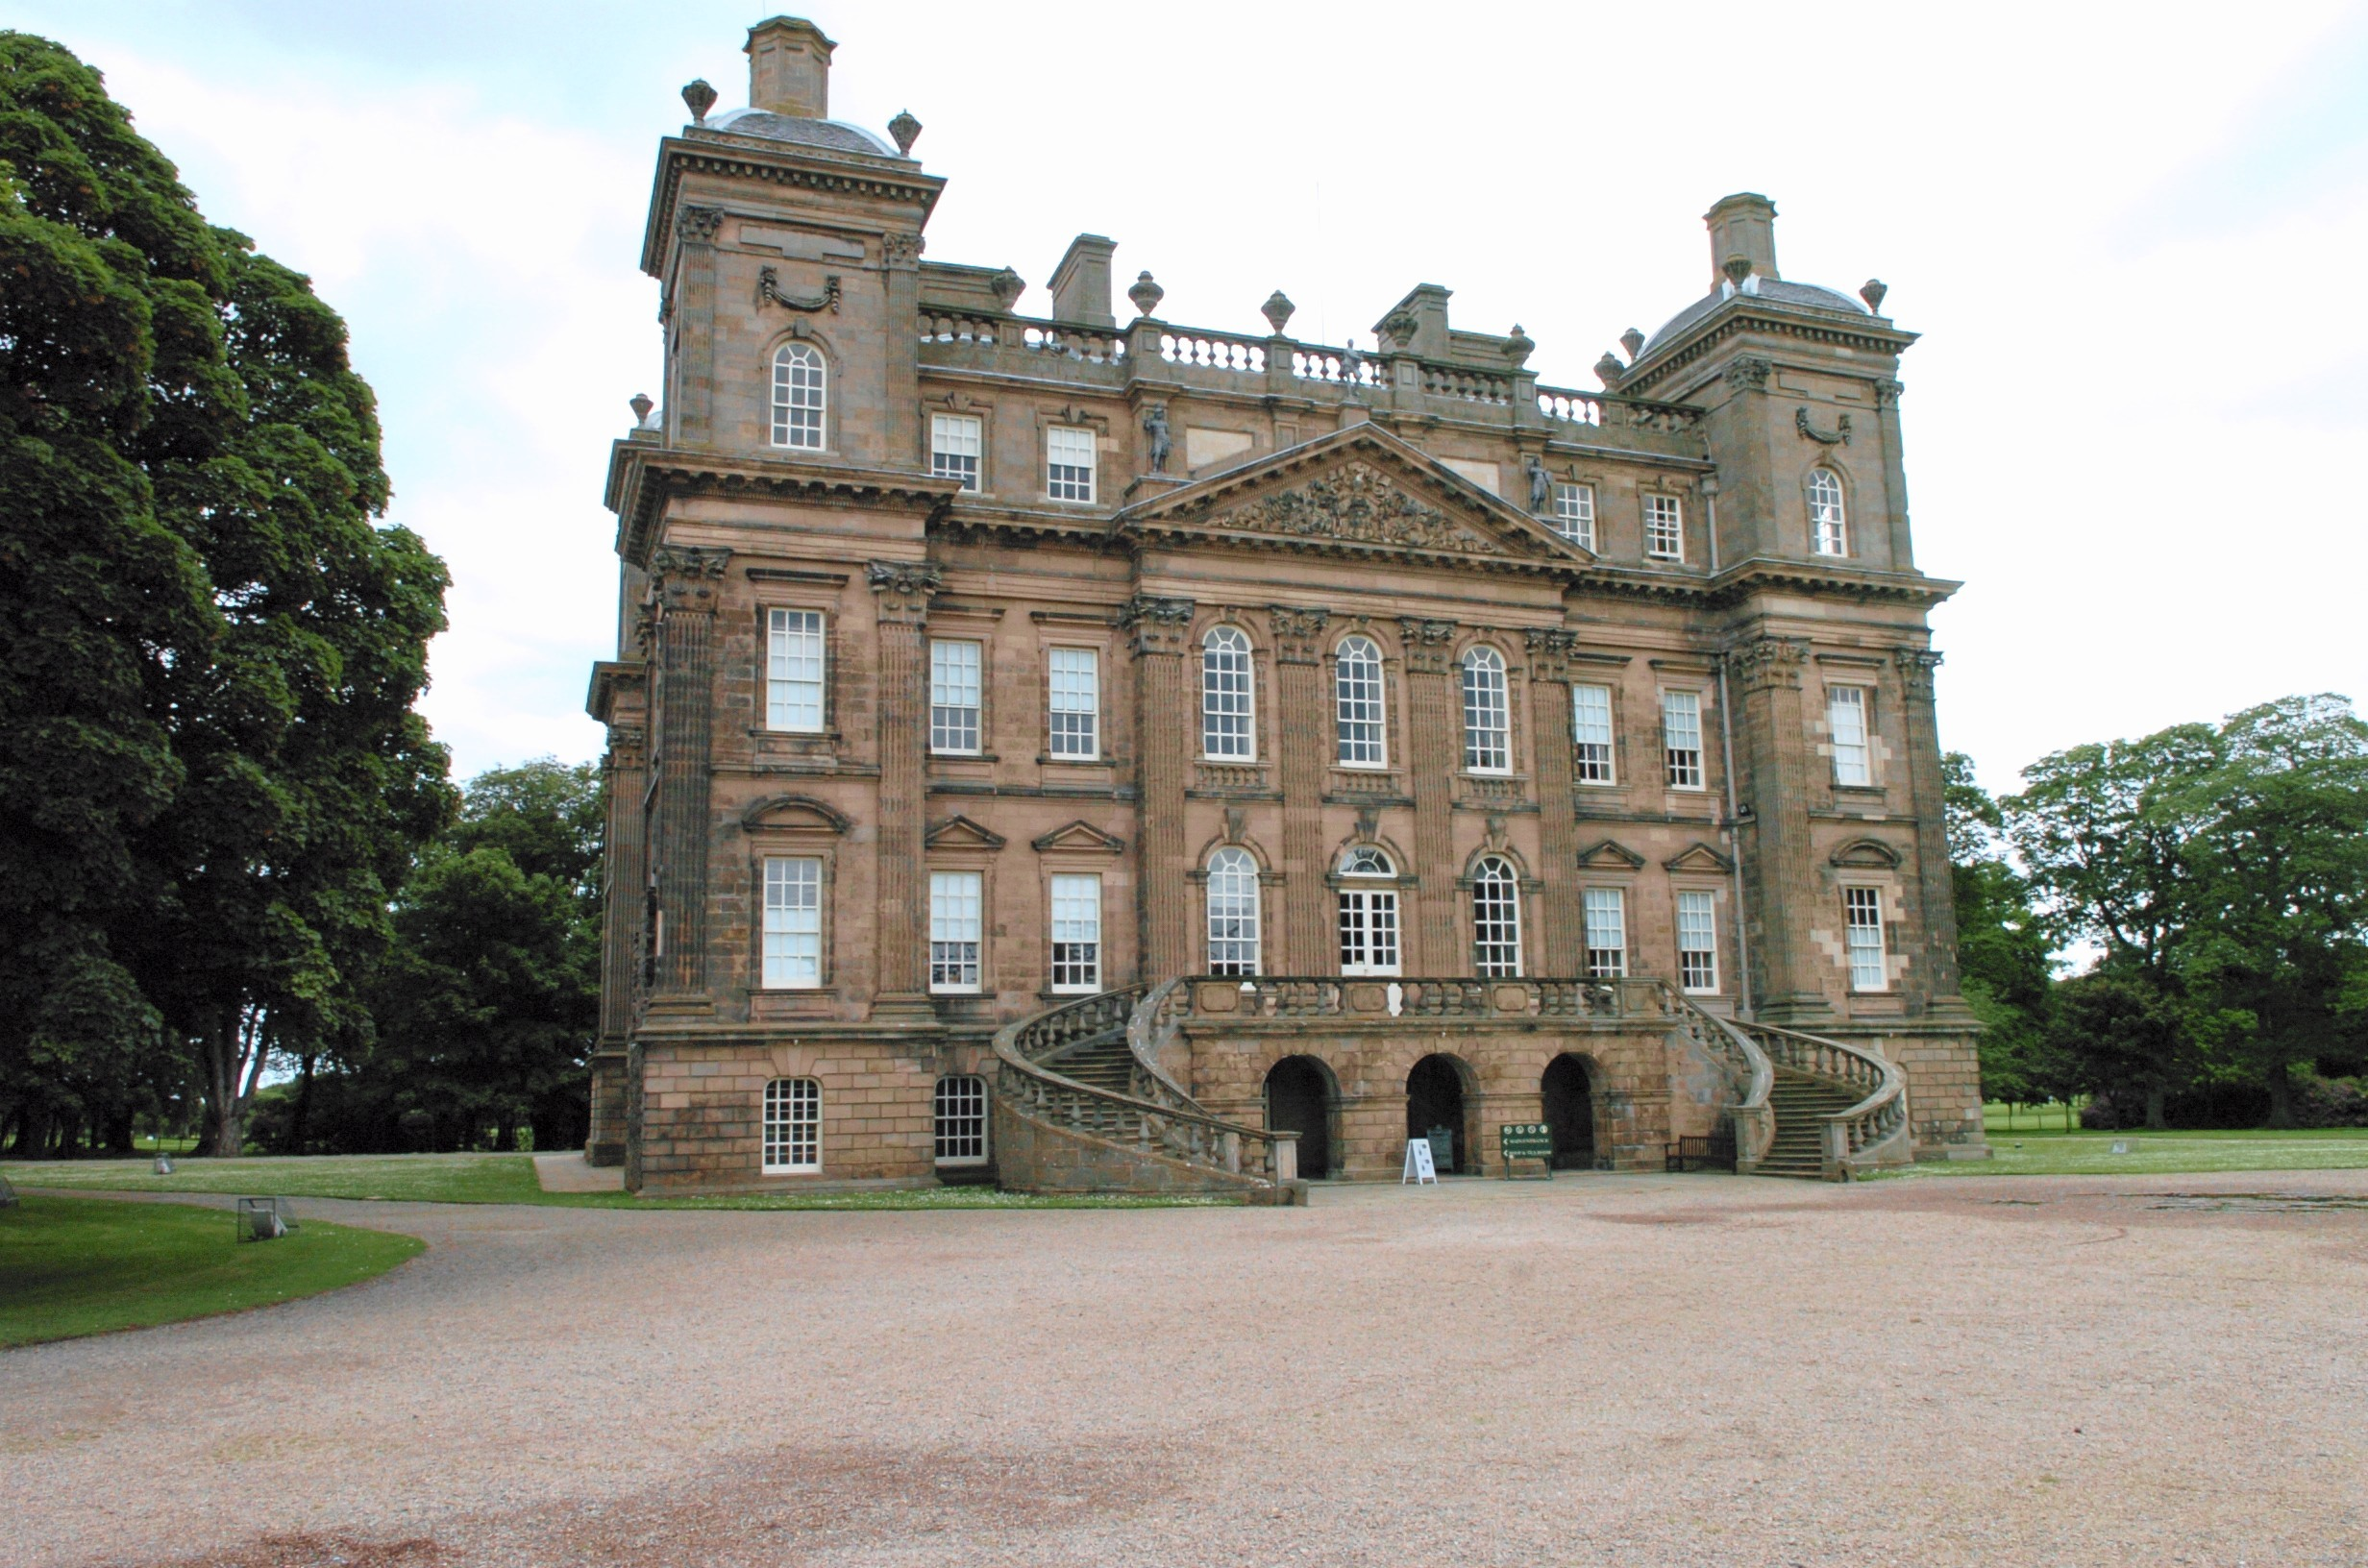 The aim is to host a music festival in the grounds of Duff House.